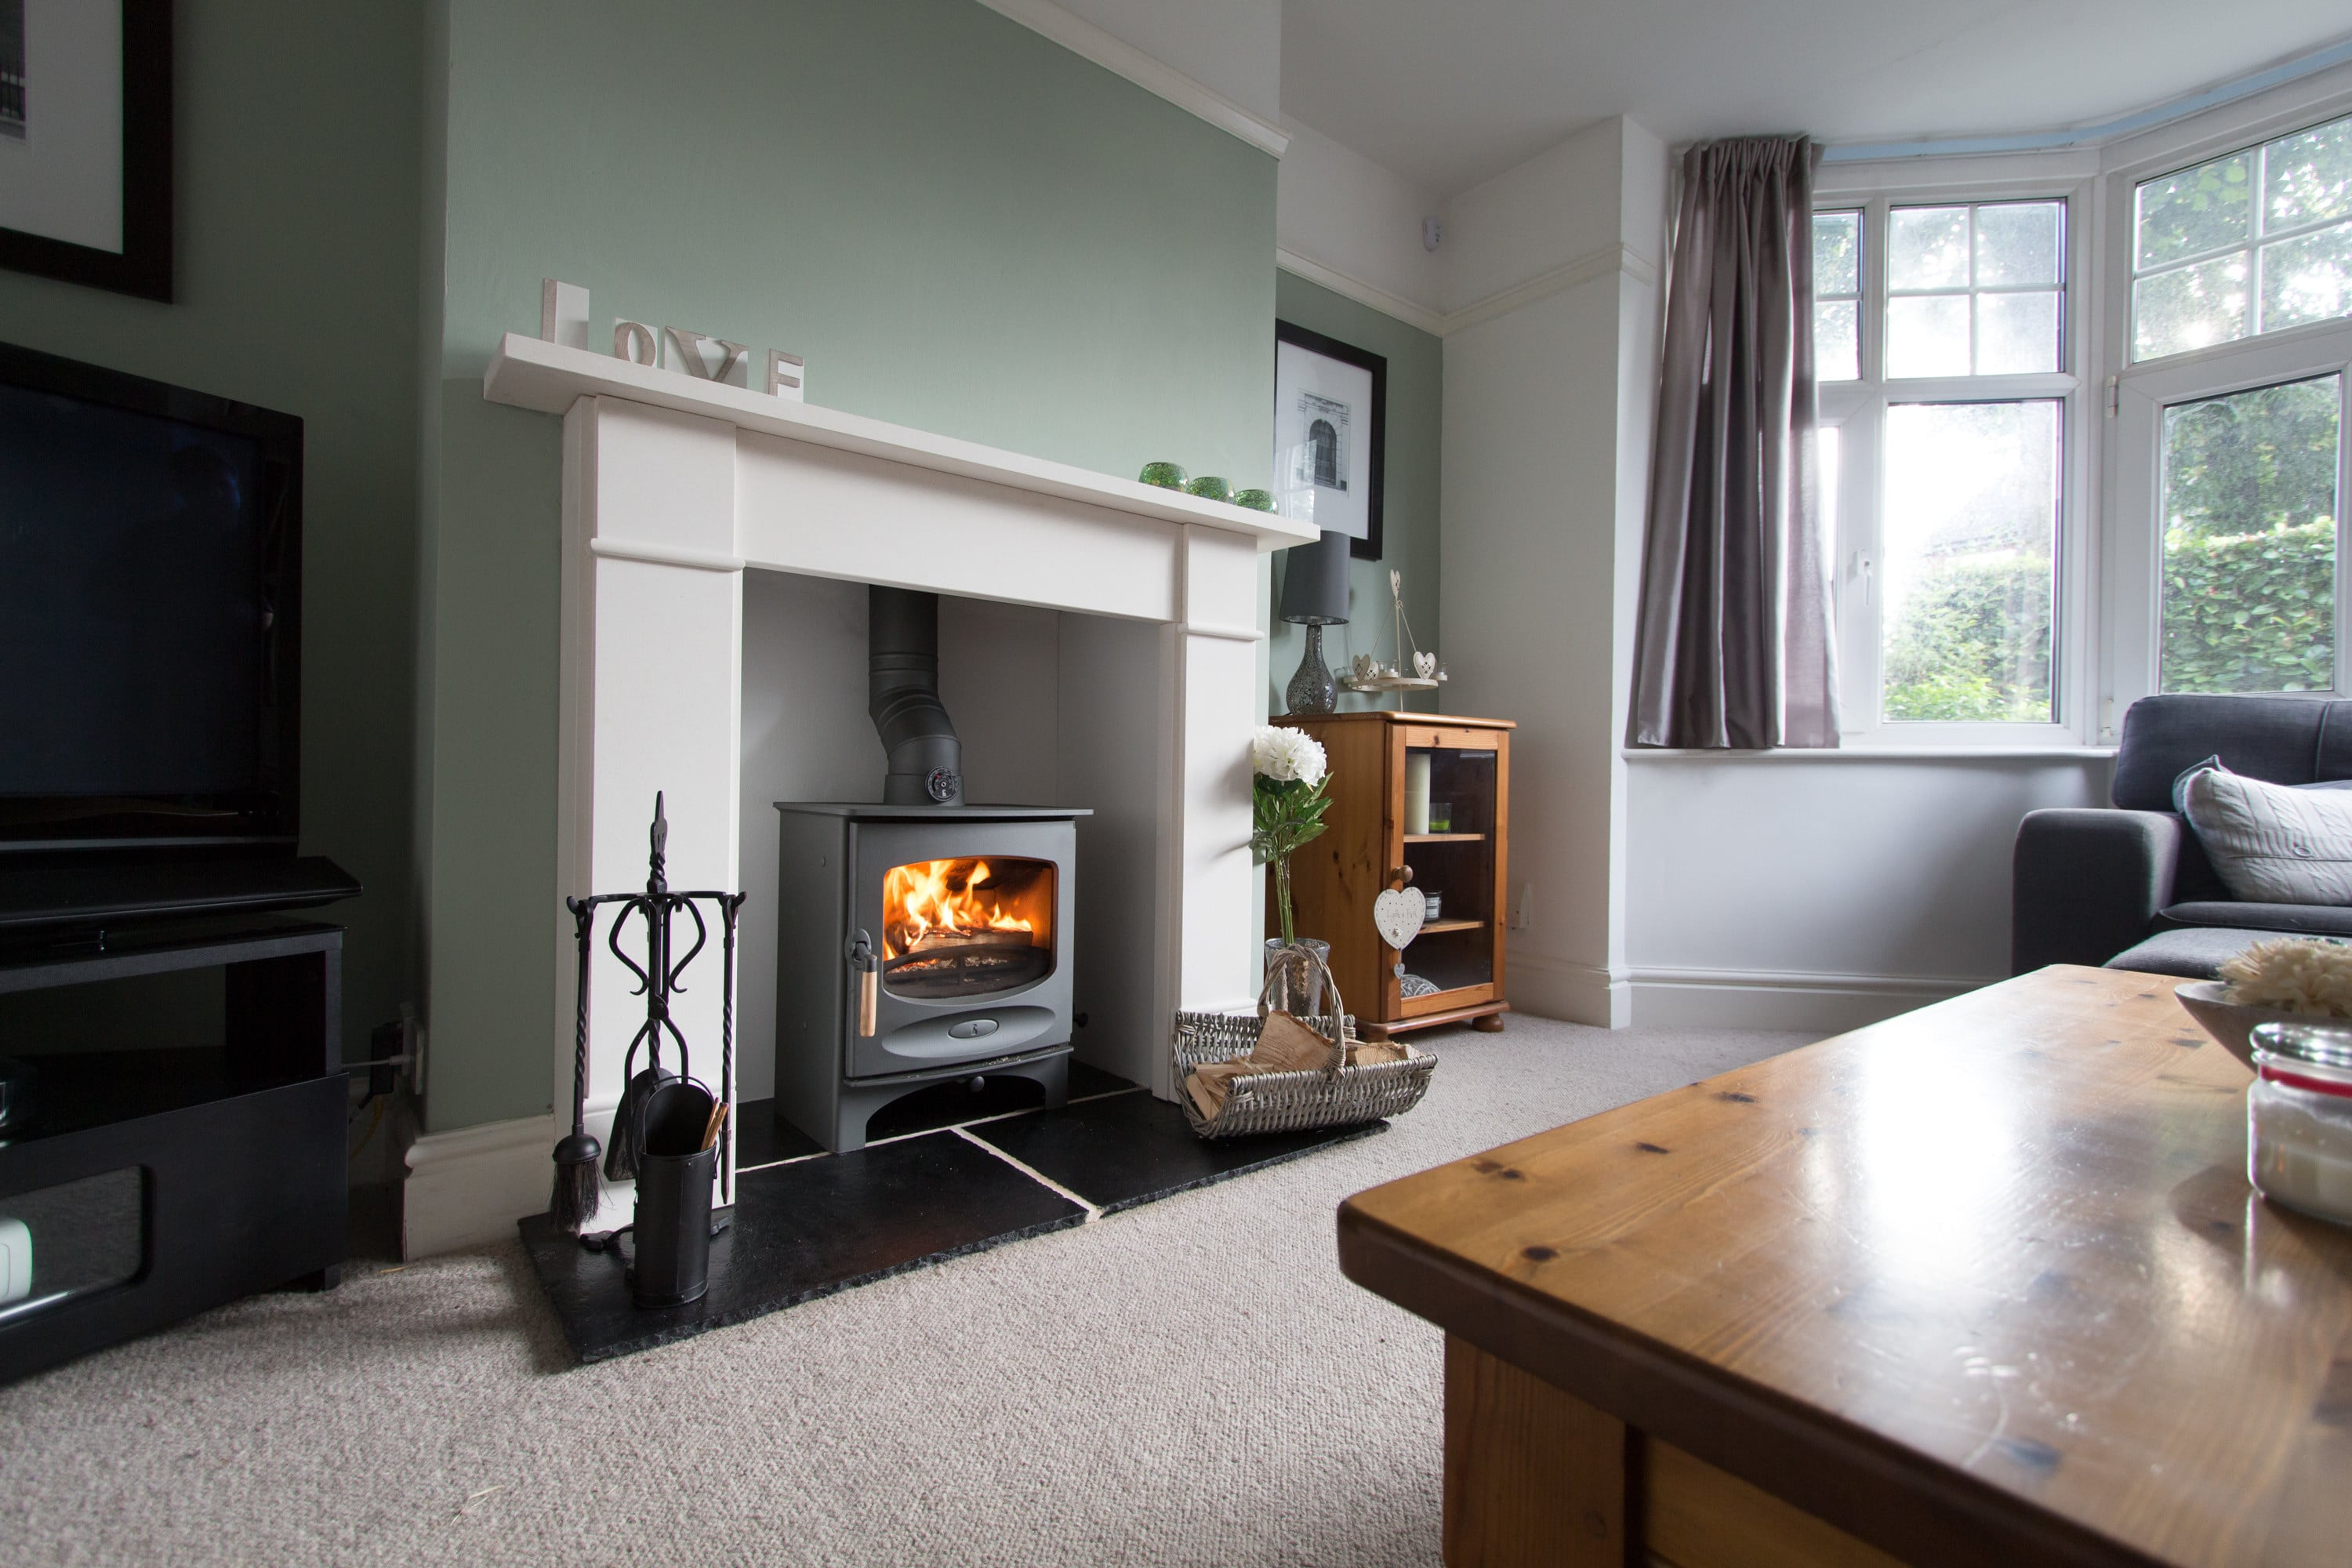 Charnwood C-Five with a Victorian Fireplace